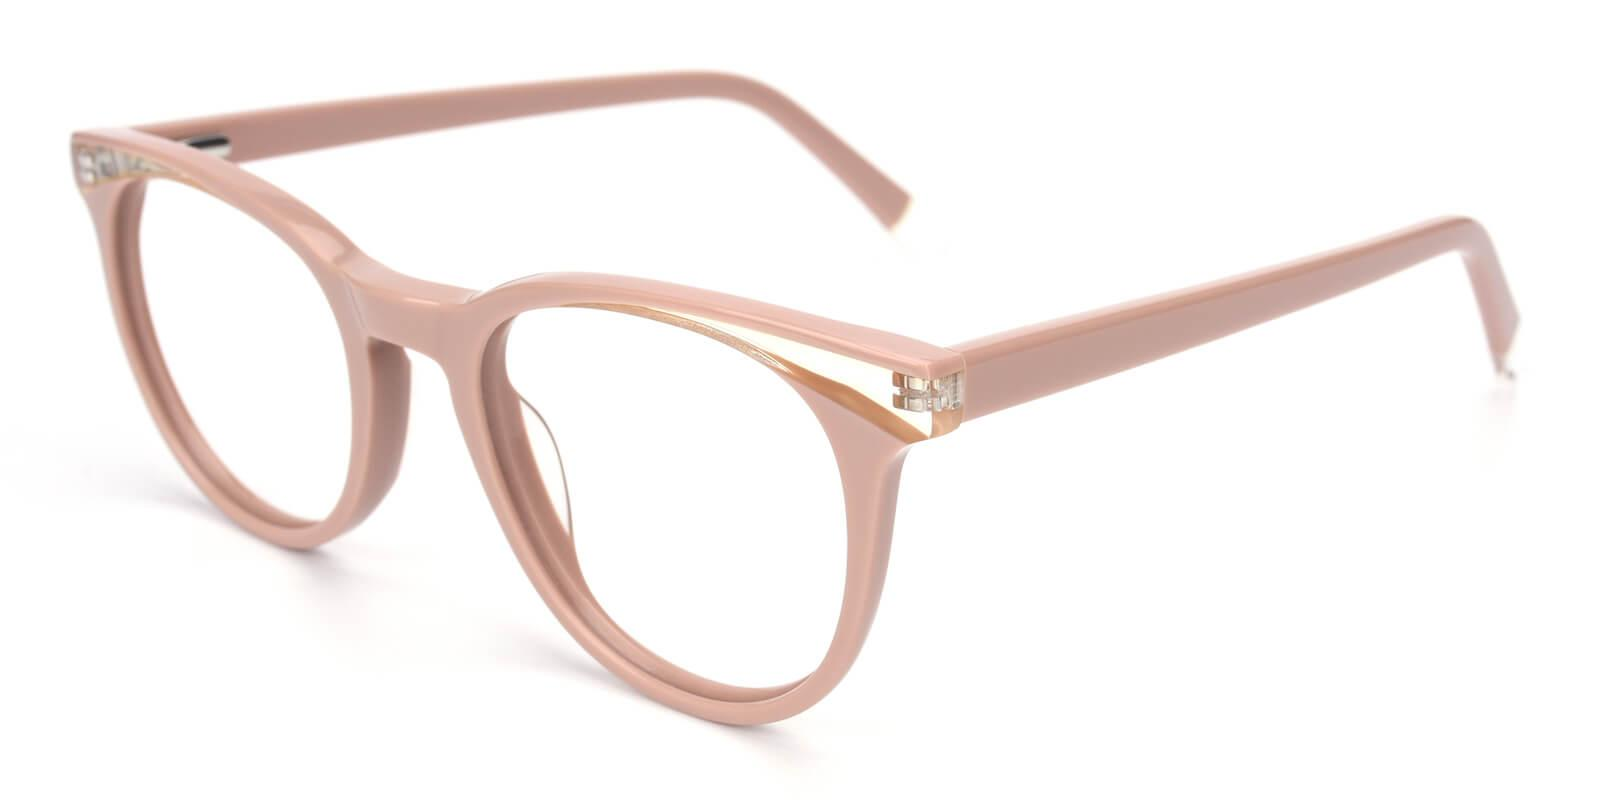 Clementine-Cream-Oval / Cat-Acetate-Eyeglasses-additional1